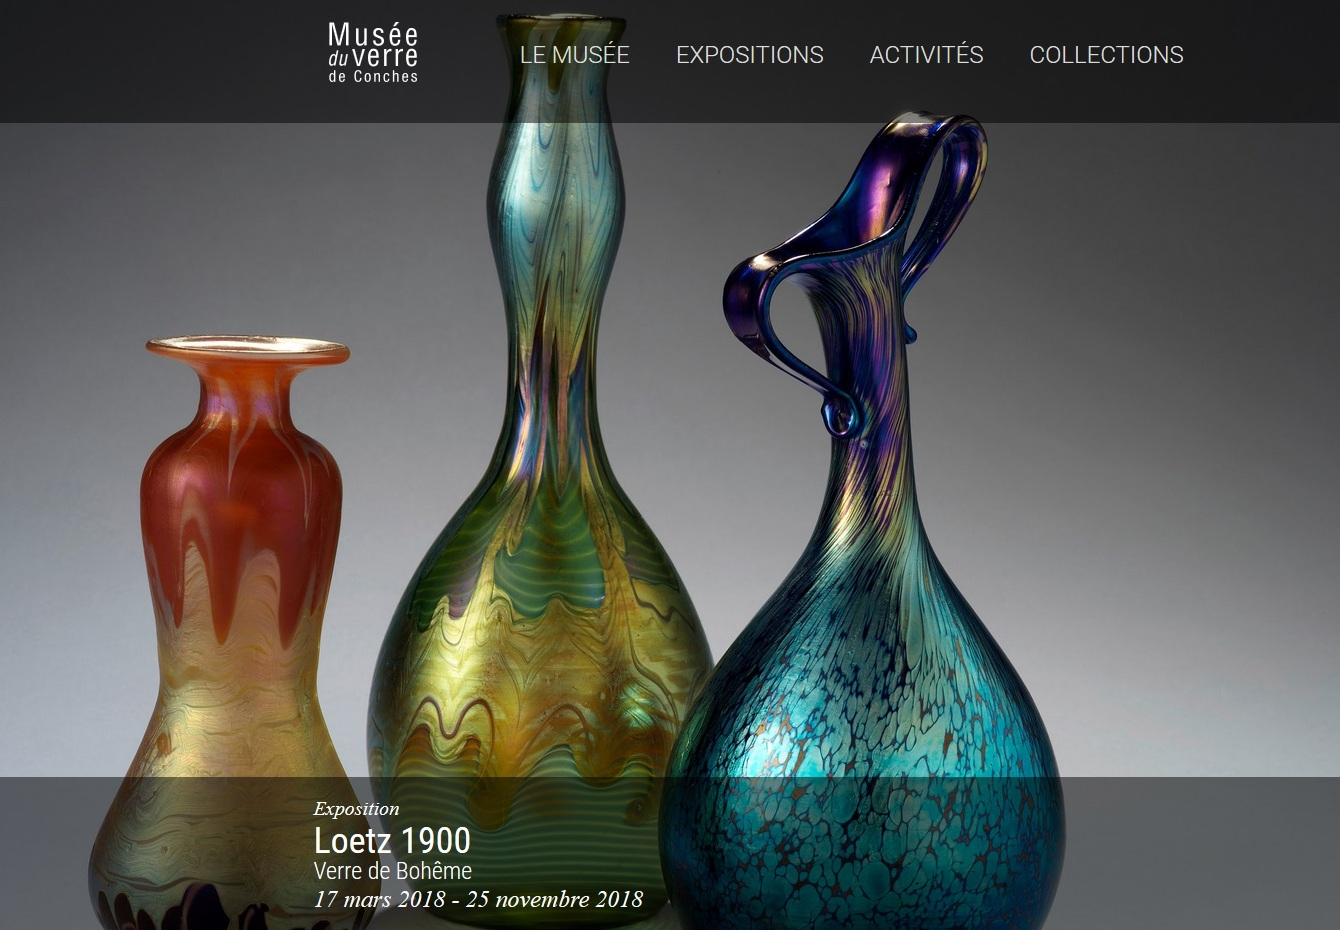 Loetz Exhibition at the Musee du Verre de Conches